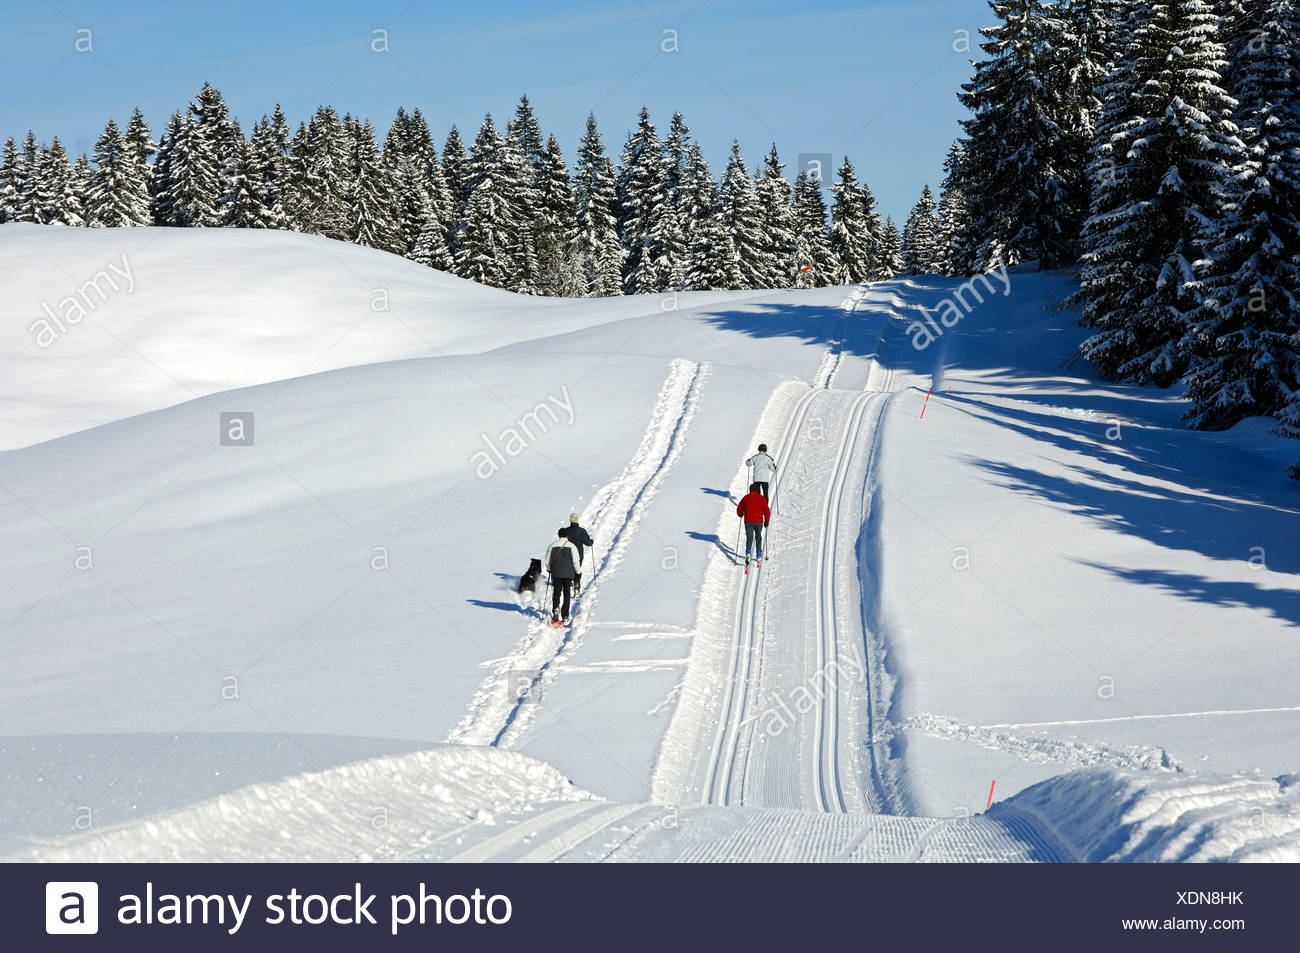 Groomed cross-country ski trail in the Jura Mountains near St. Cergue, Switzerland, Europe - Stock Image